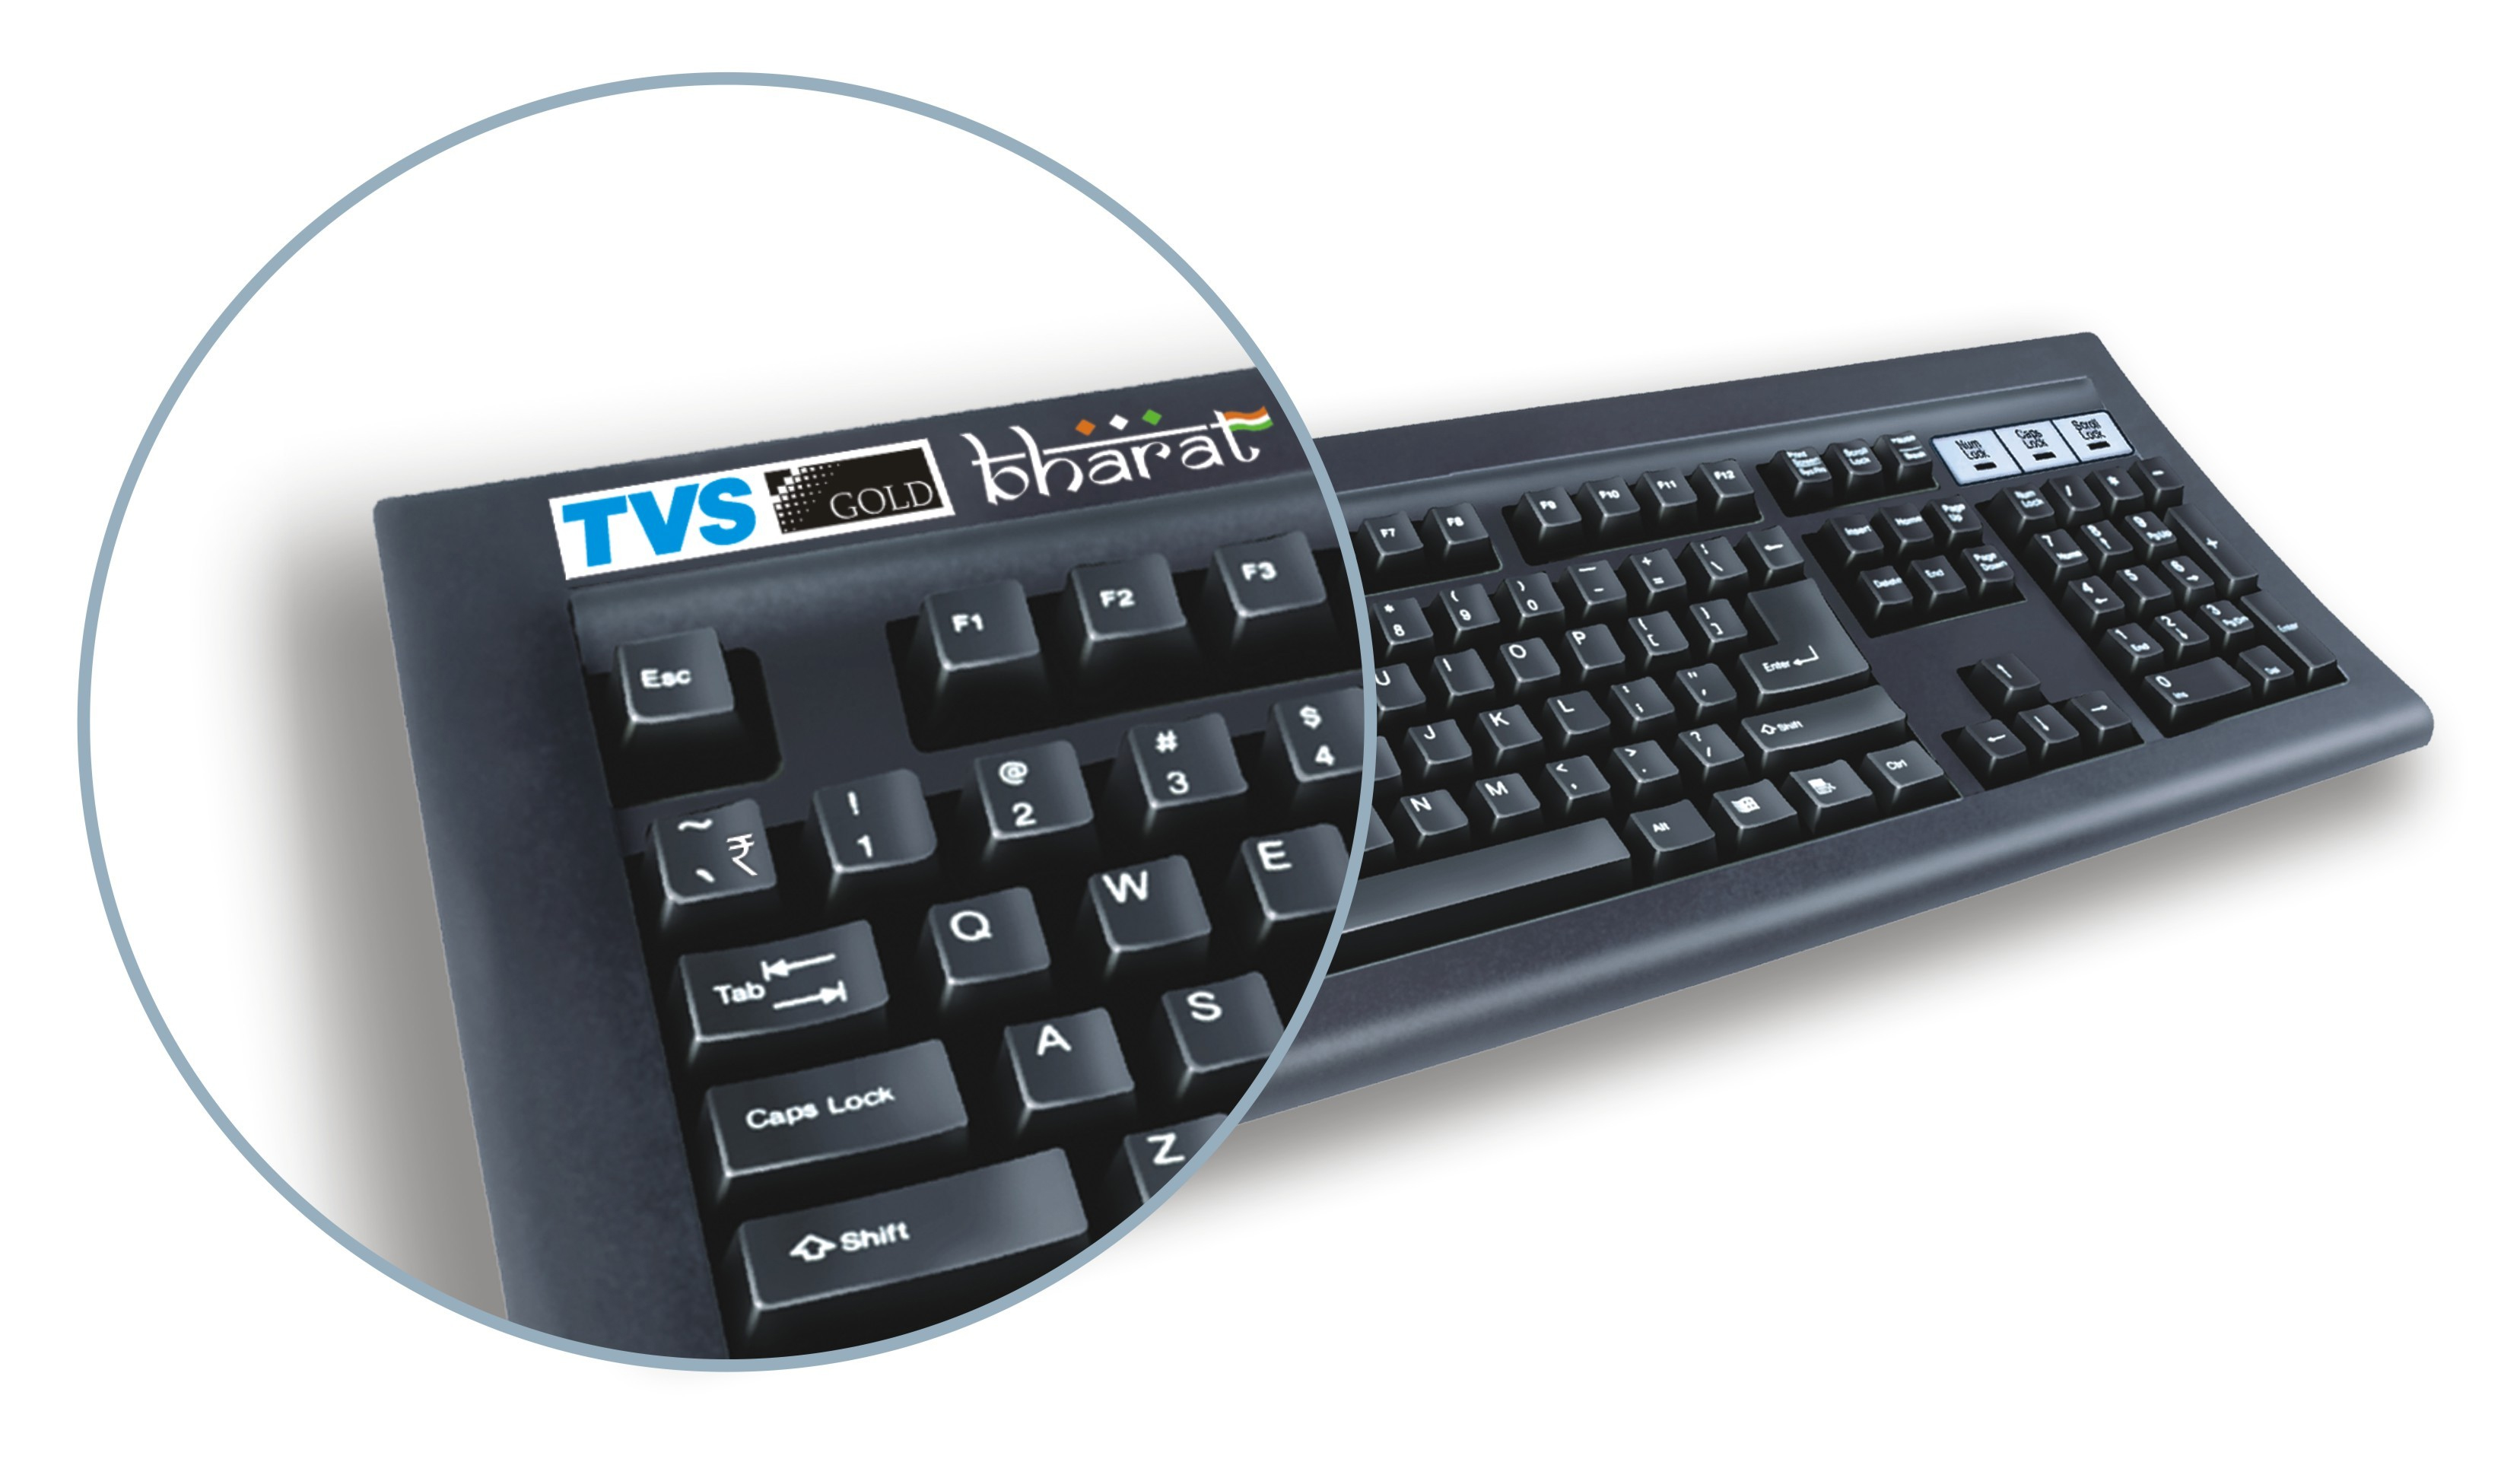 Tvs electronics unveils keyboard with the new indian rupee symbol with the announcement of tvs gold bharat a new keyboard with a dedicated indian rupee symbol key tvs e becomes the first and only indian it company to biocorpaavc Images